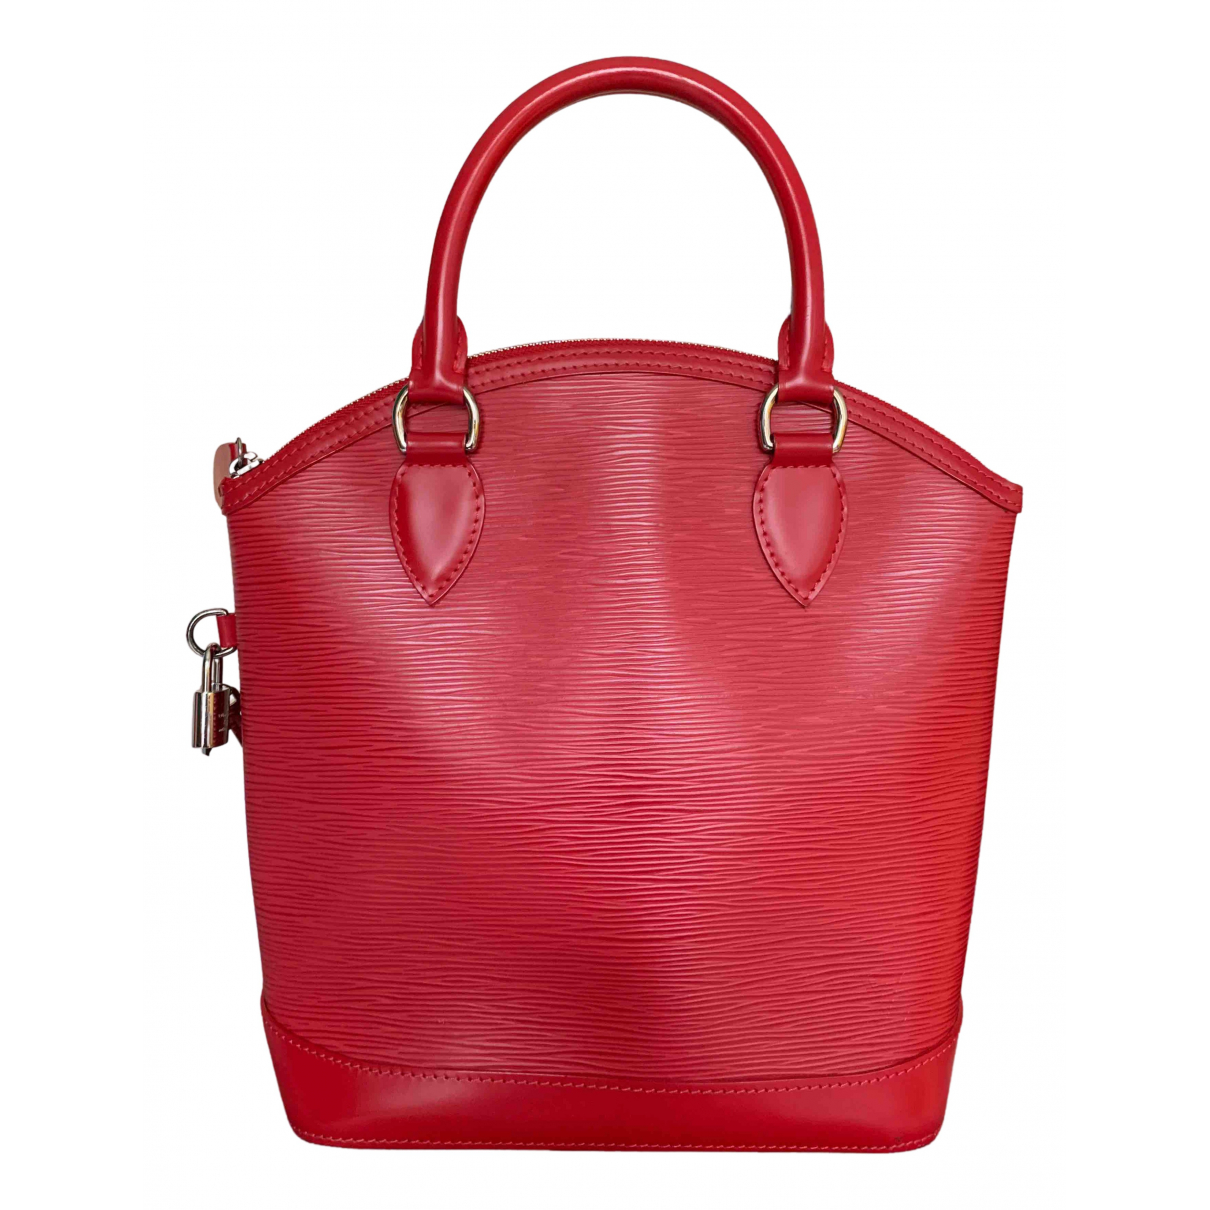 Louis Vuitton Lockit Vertical Red Leather handbag for Women N